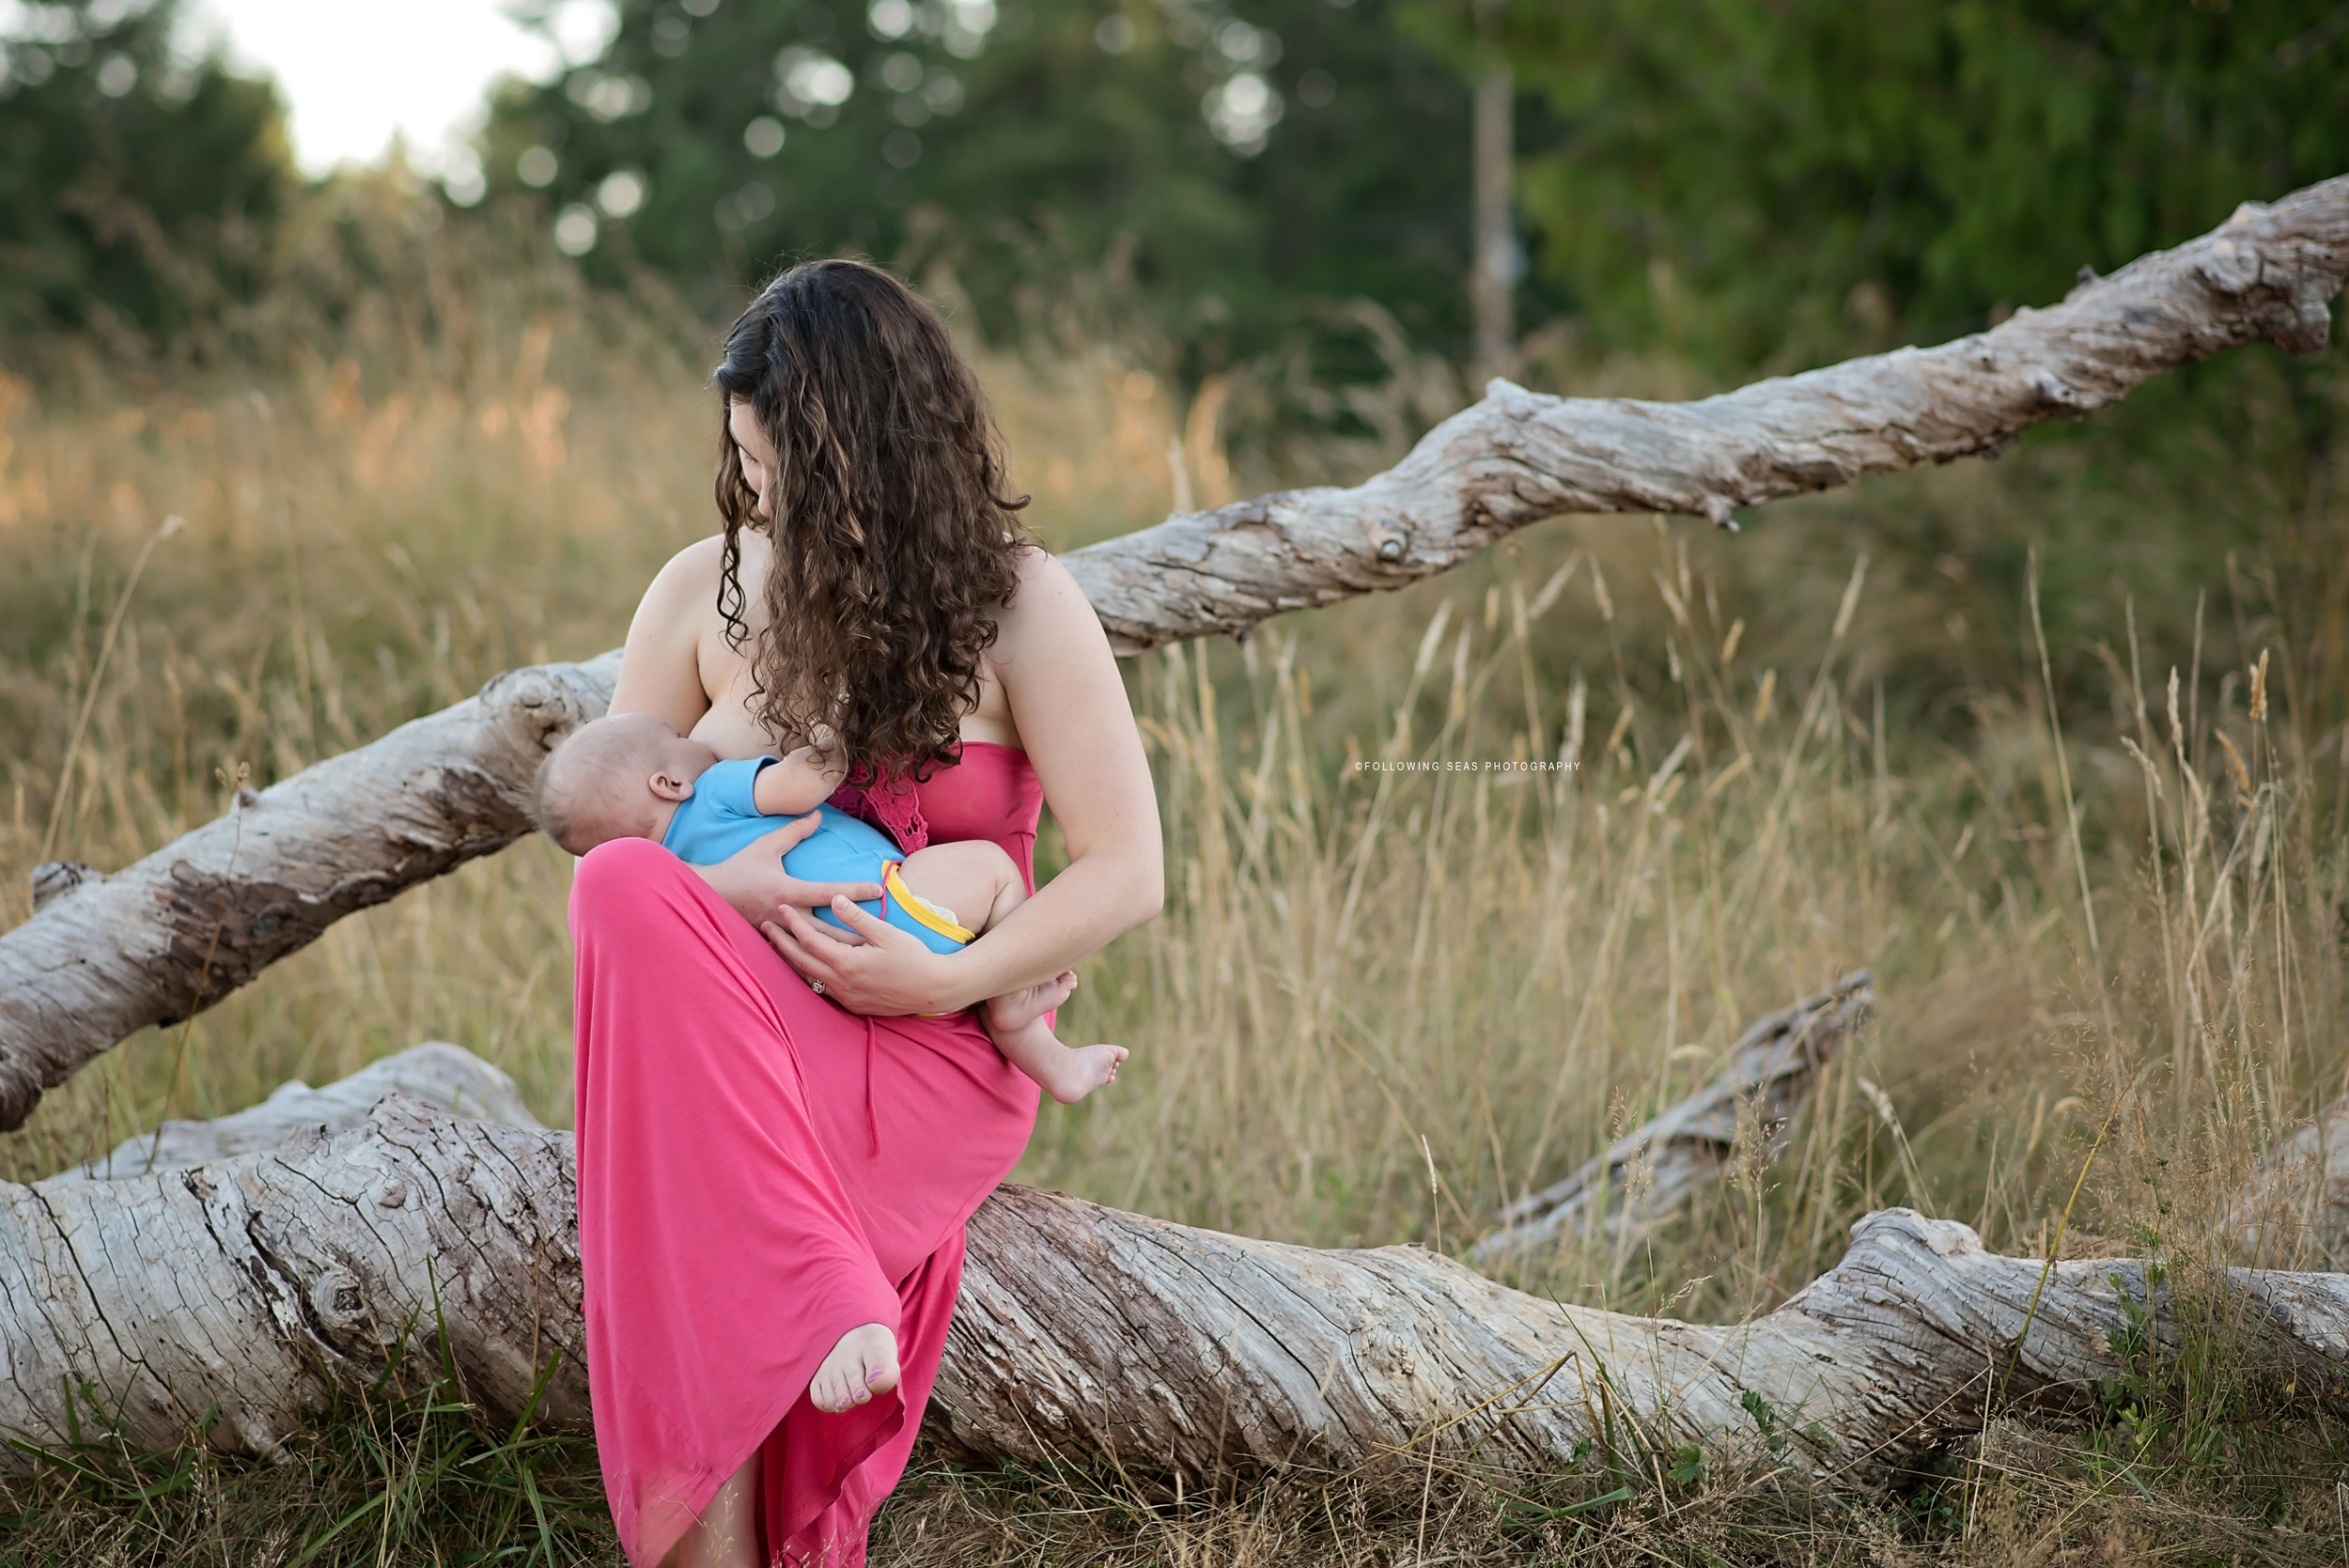 Port-Orchard-Breastfeeding-Photographer-Following-Seas-Photography-9948 copy.jpg